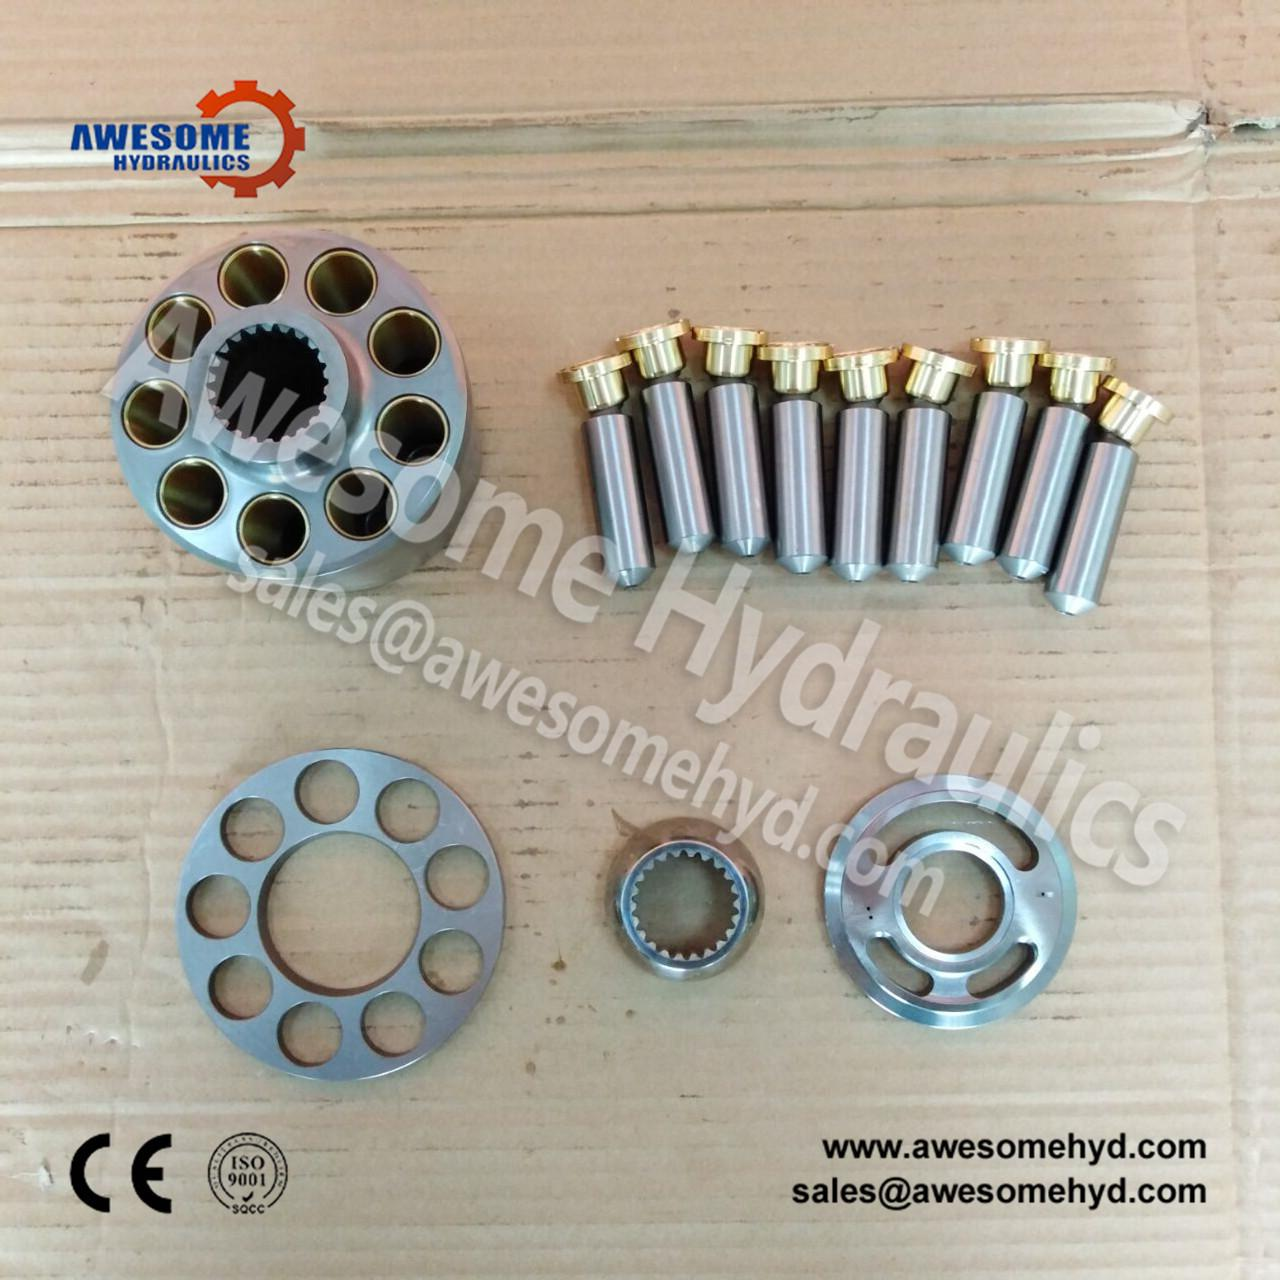 Repair Kit Uchida Rexroth Hydraulic Pump Parts A11VO40 A11VO60 A11VO75 A11VO95 A11VO130 A11VO145